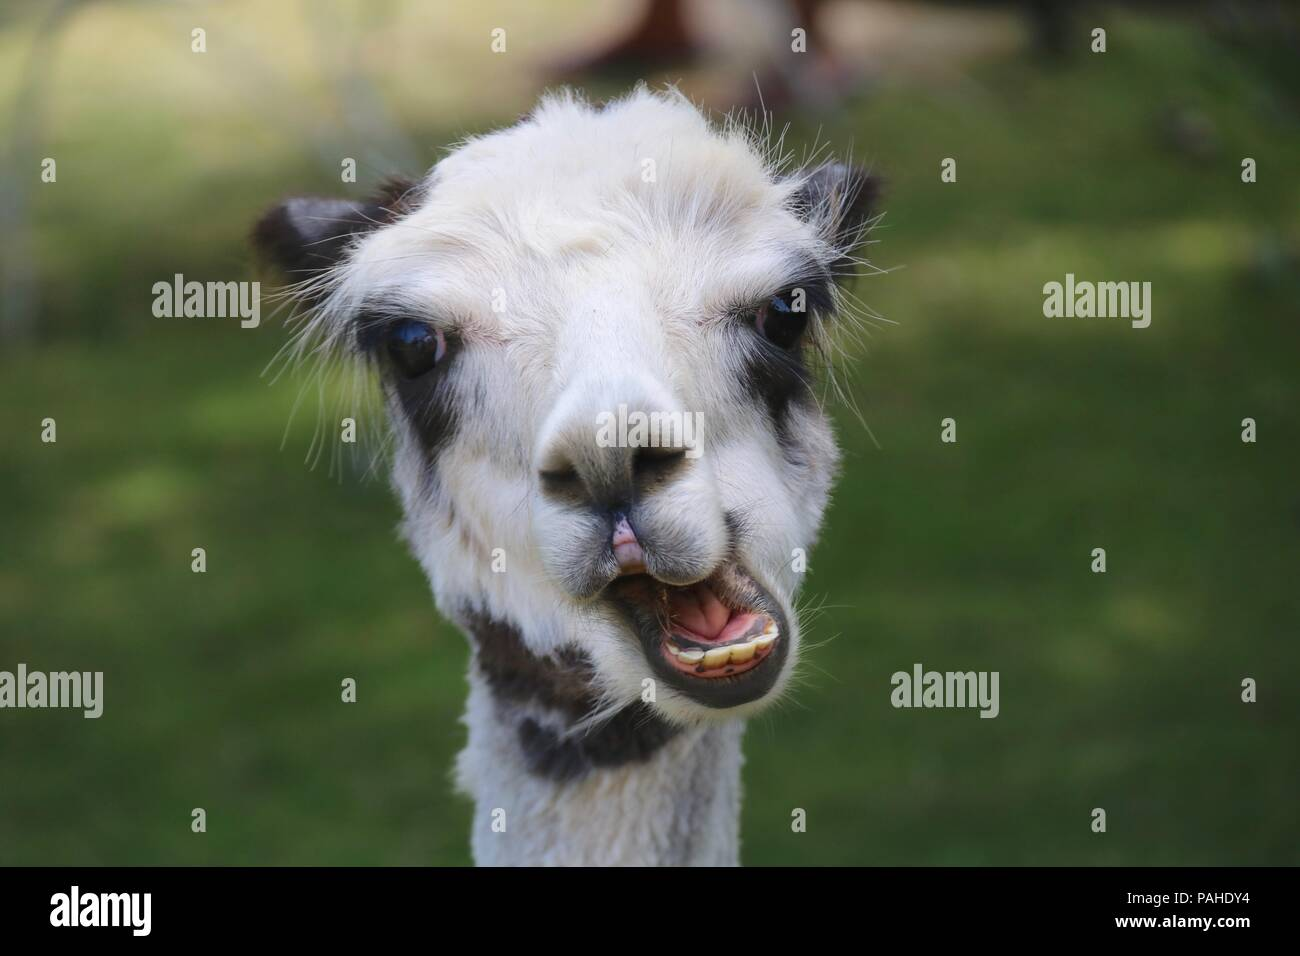 A cute black and white alpaca chewing food - close up on the head.  The animals are farmed for their soft wool fleeces. - Stock Image